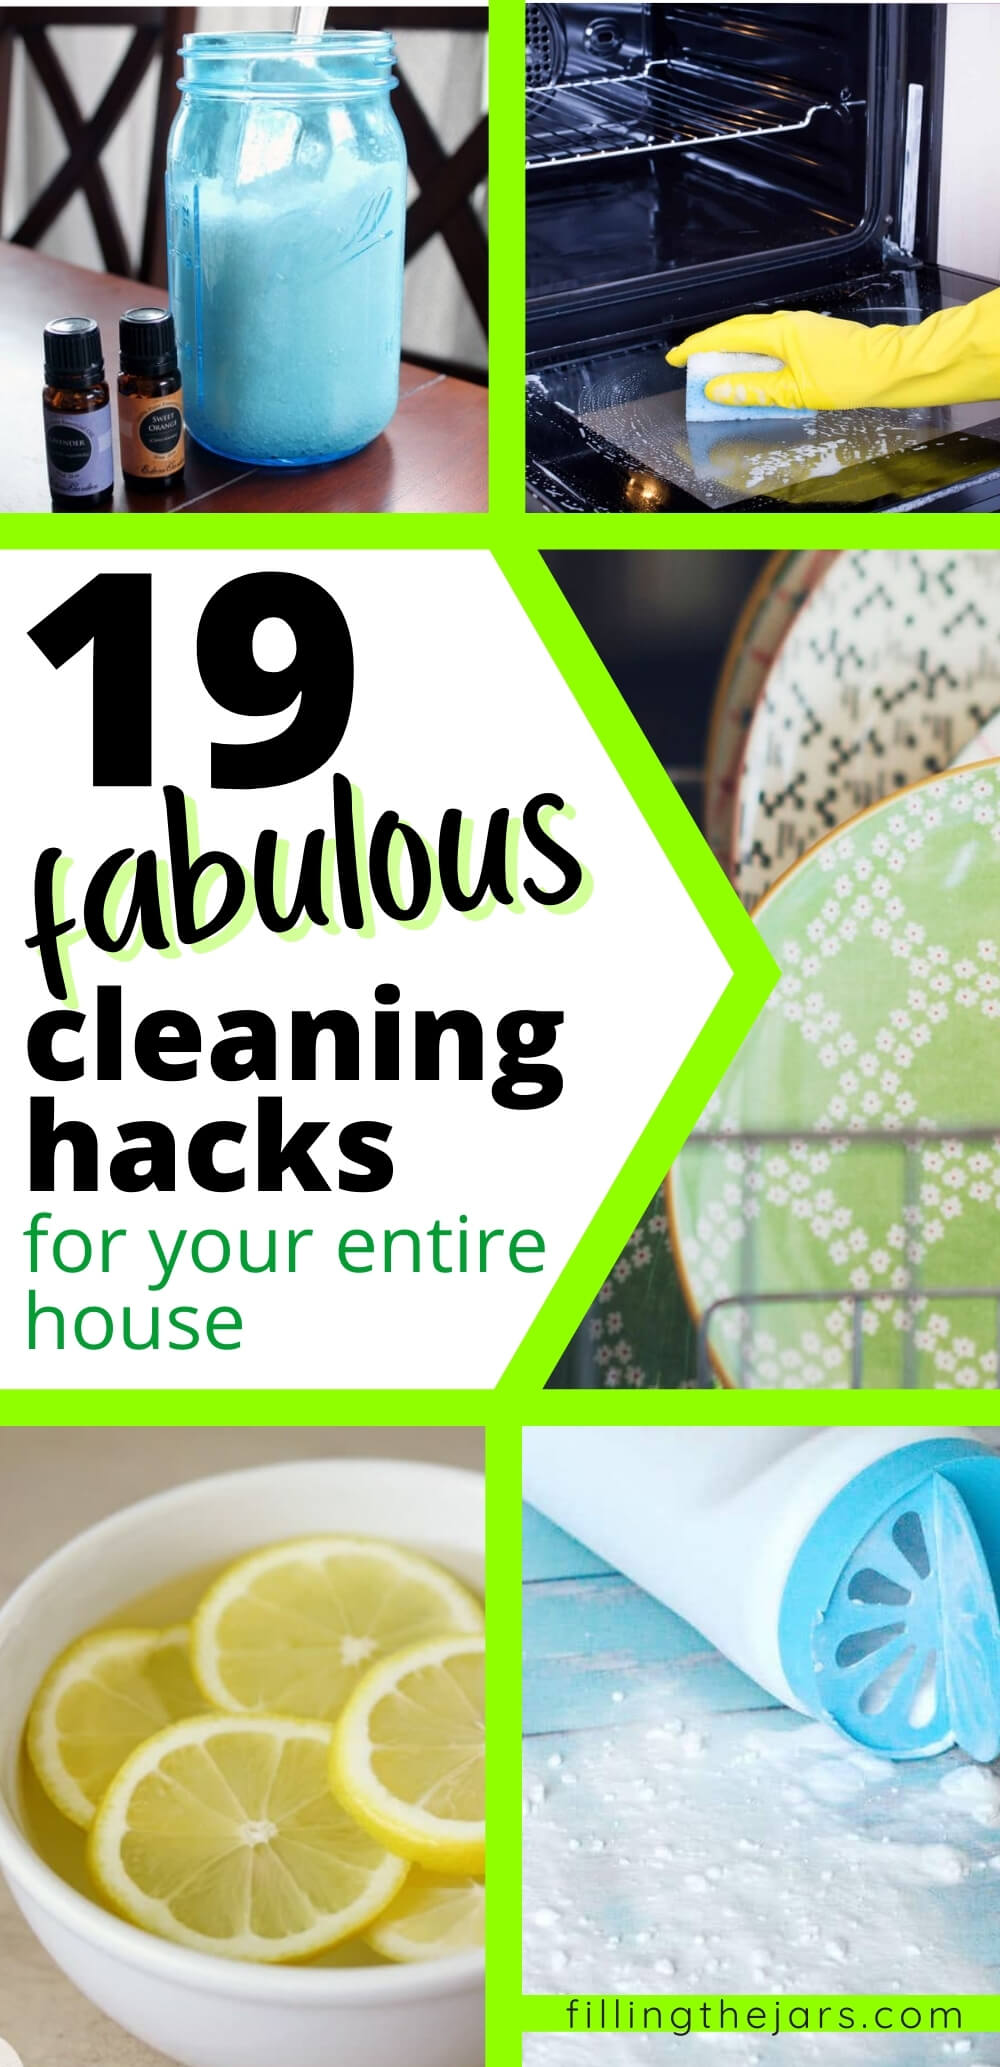 Collage image of cleaning hacks and tips.